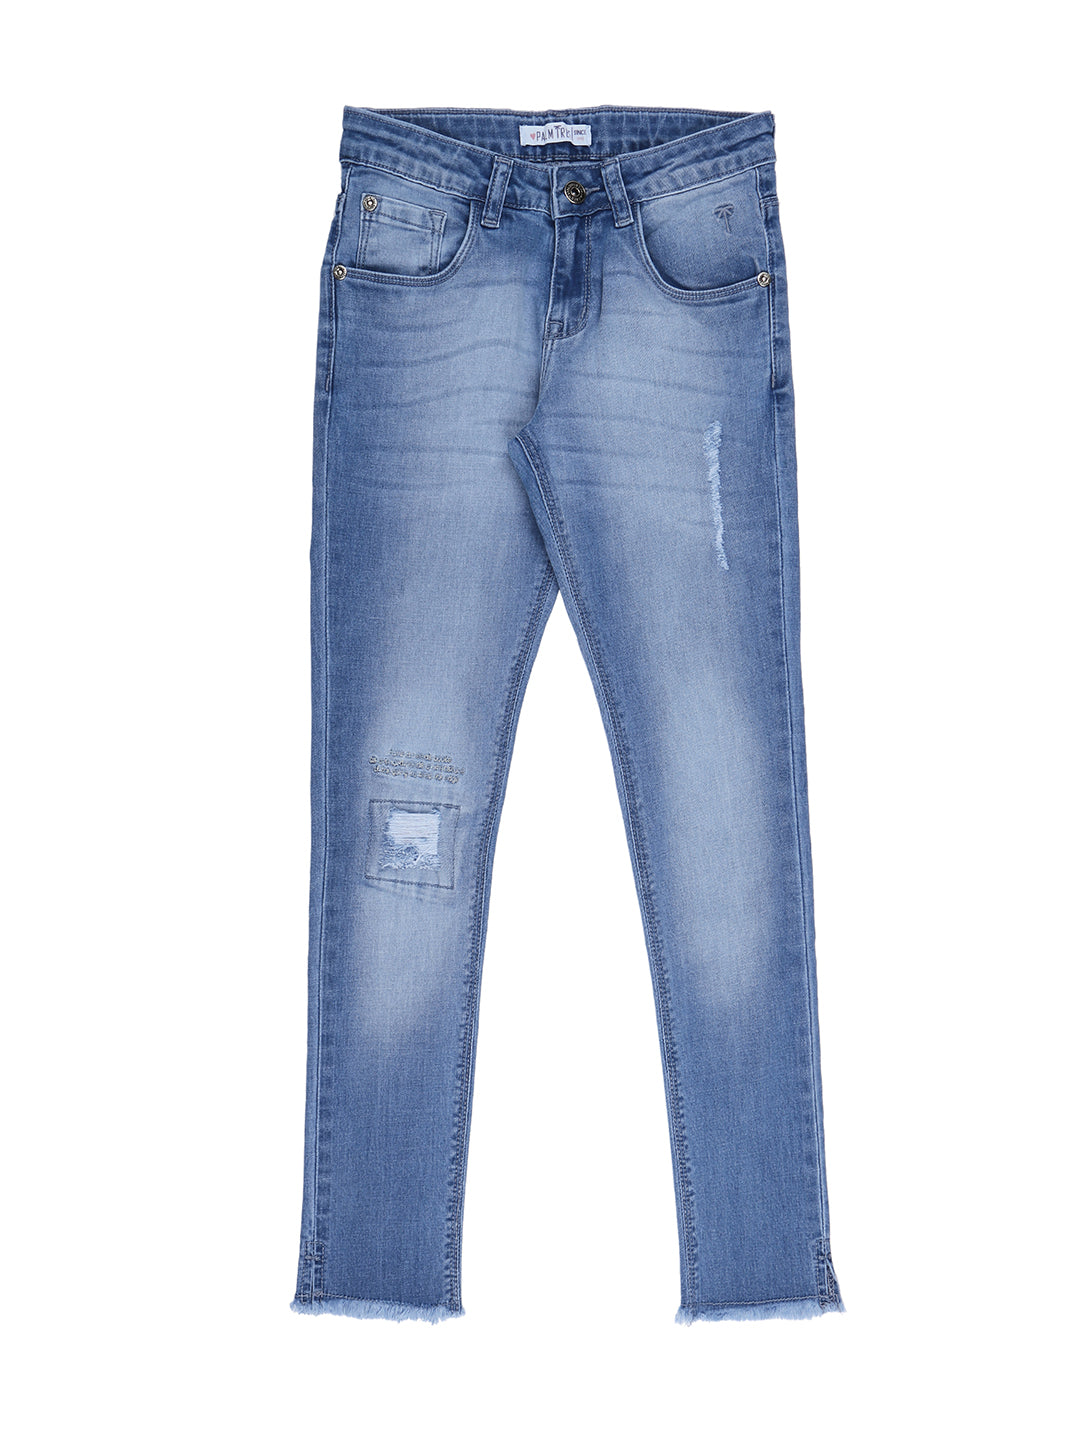 Blue Ice Wash Jeans2